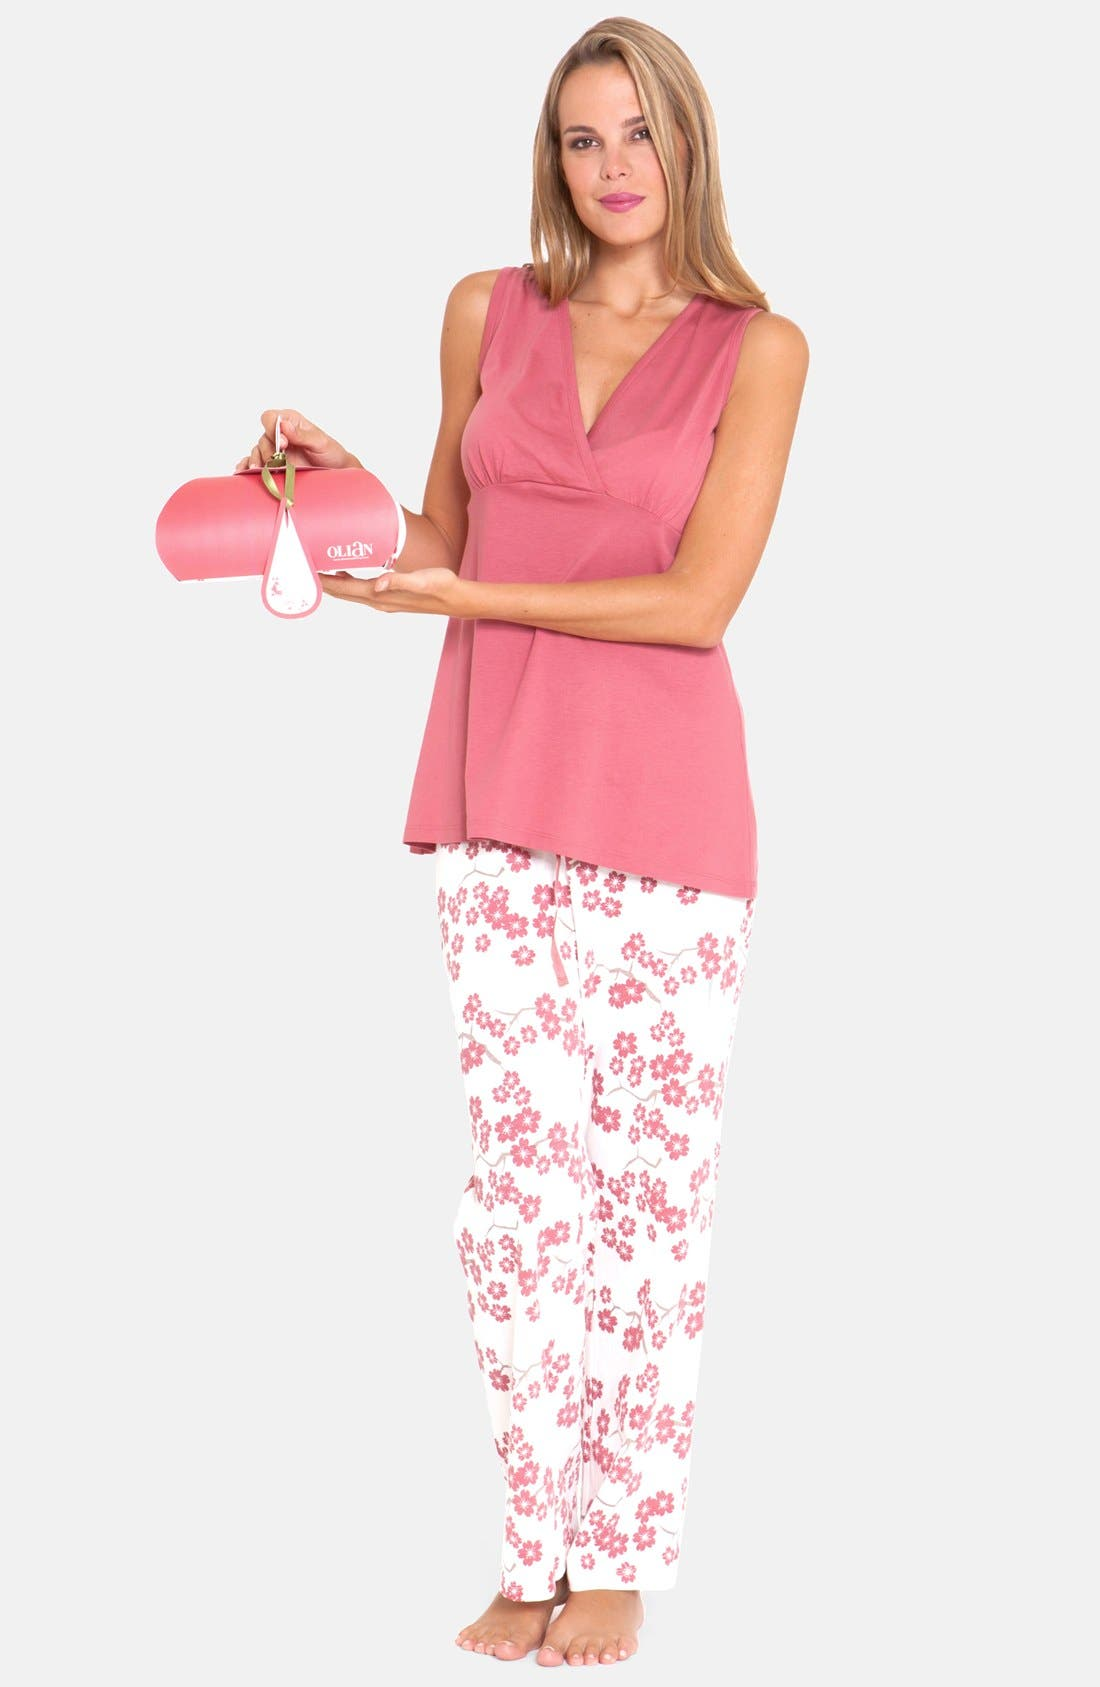 4-Piece Maternity Sleepwear Gift Set,                             Alternate thumbnail 4, color,                             664